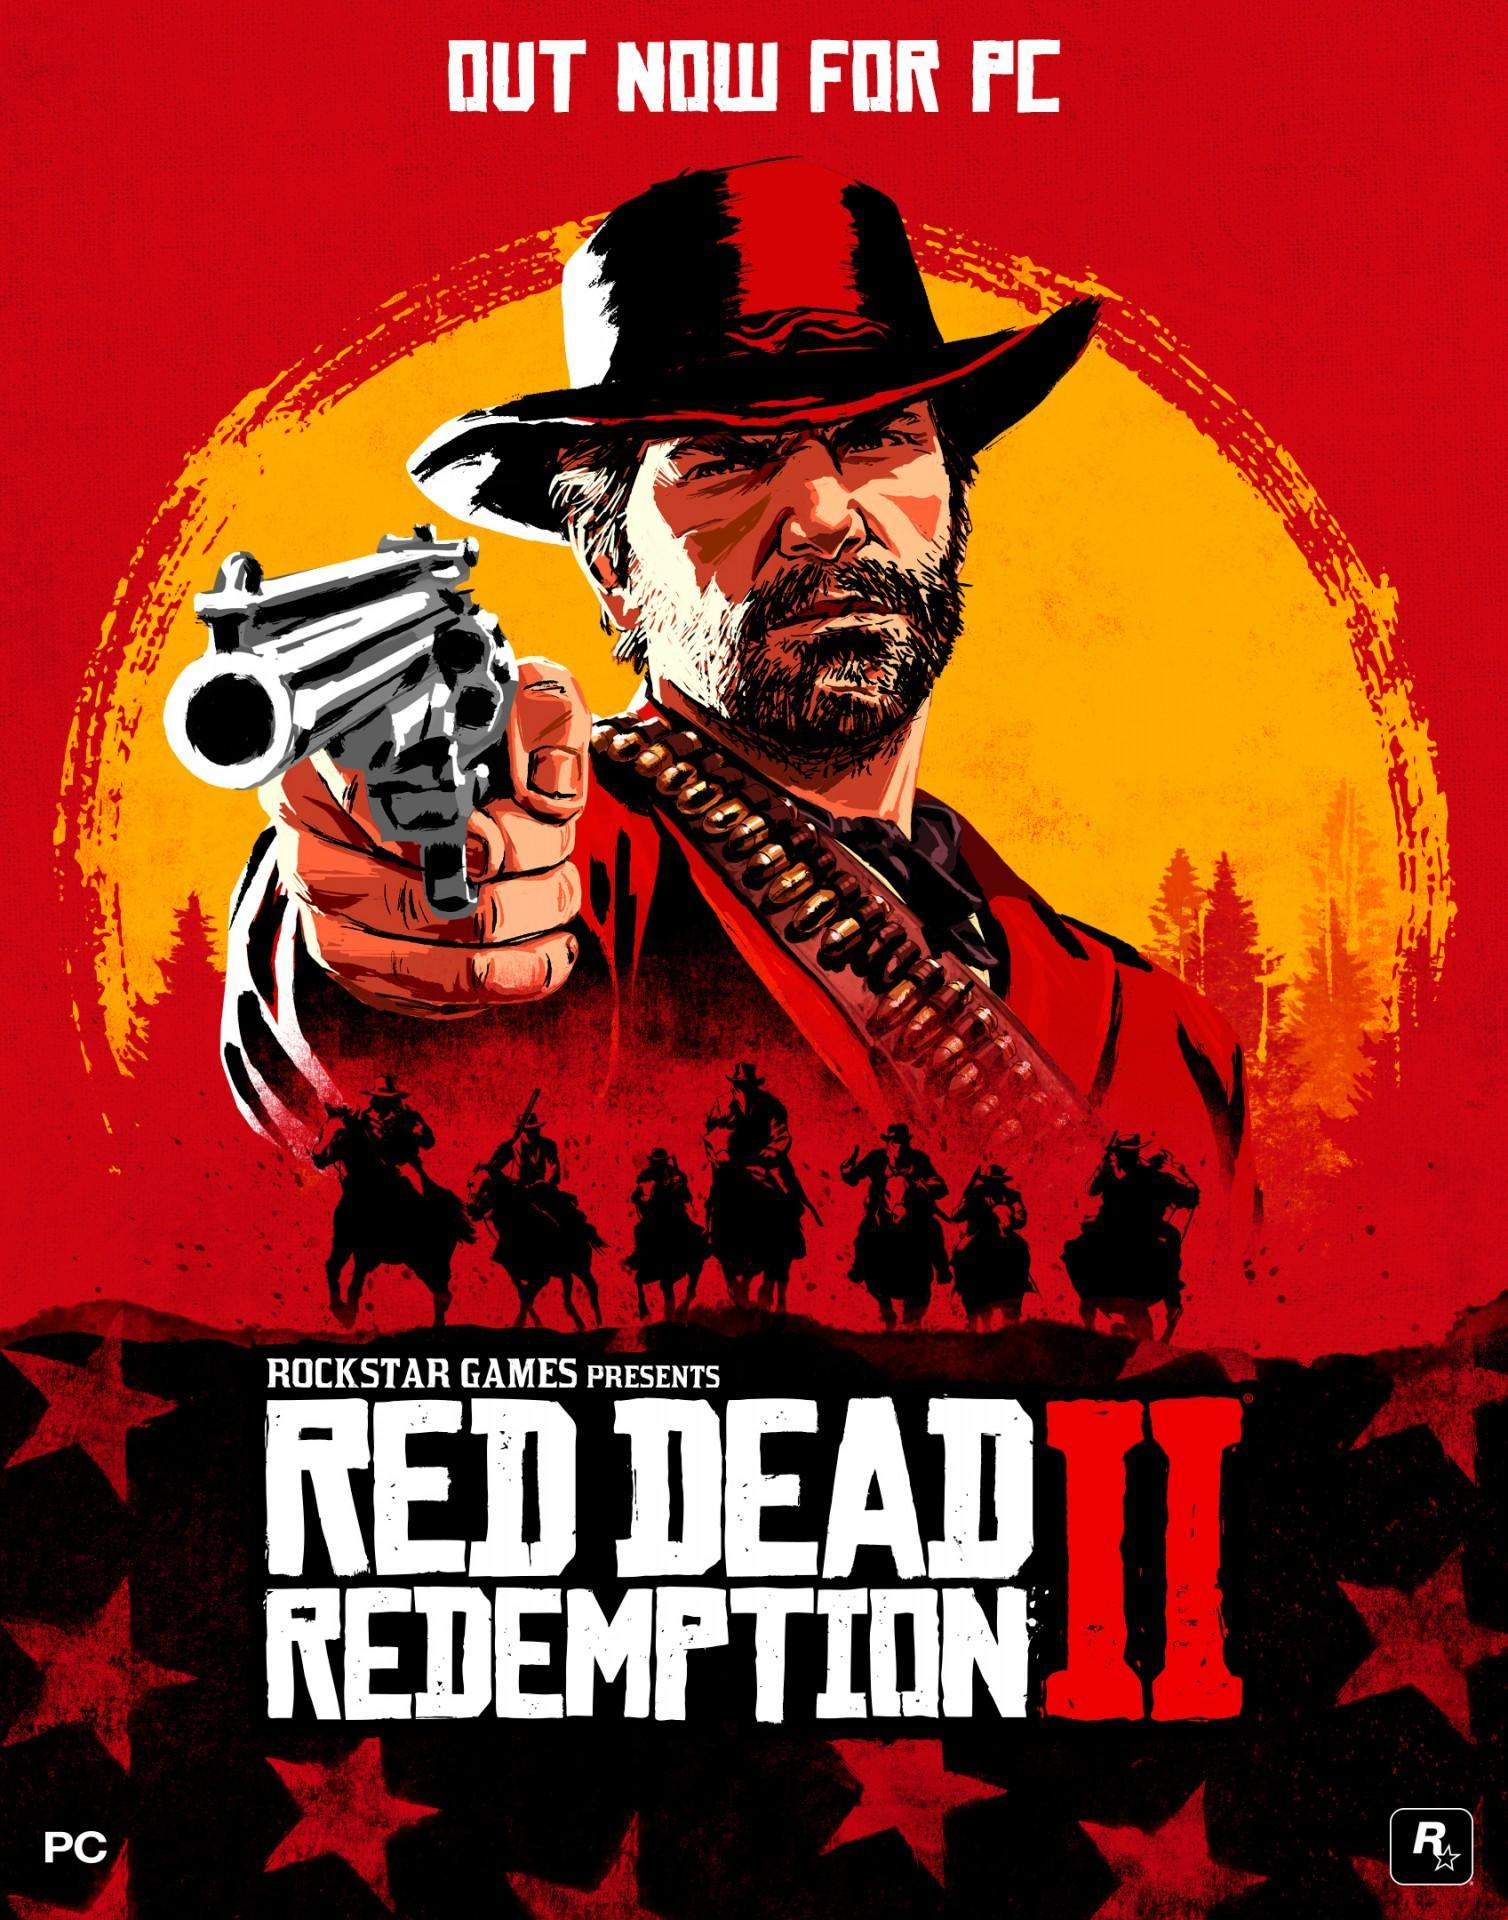 Red Dead Redemption 2: Now Available for PC